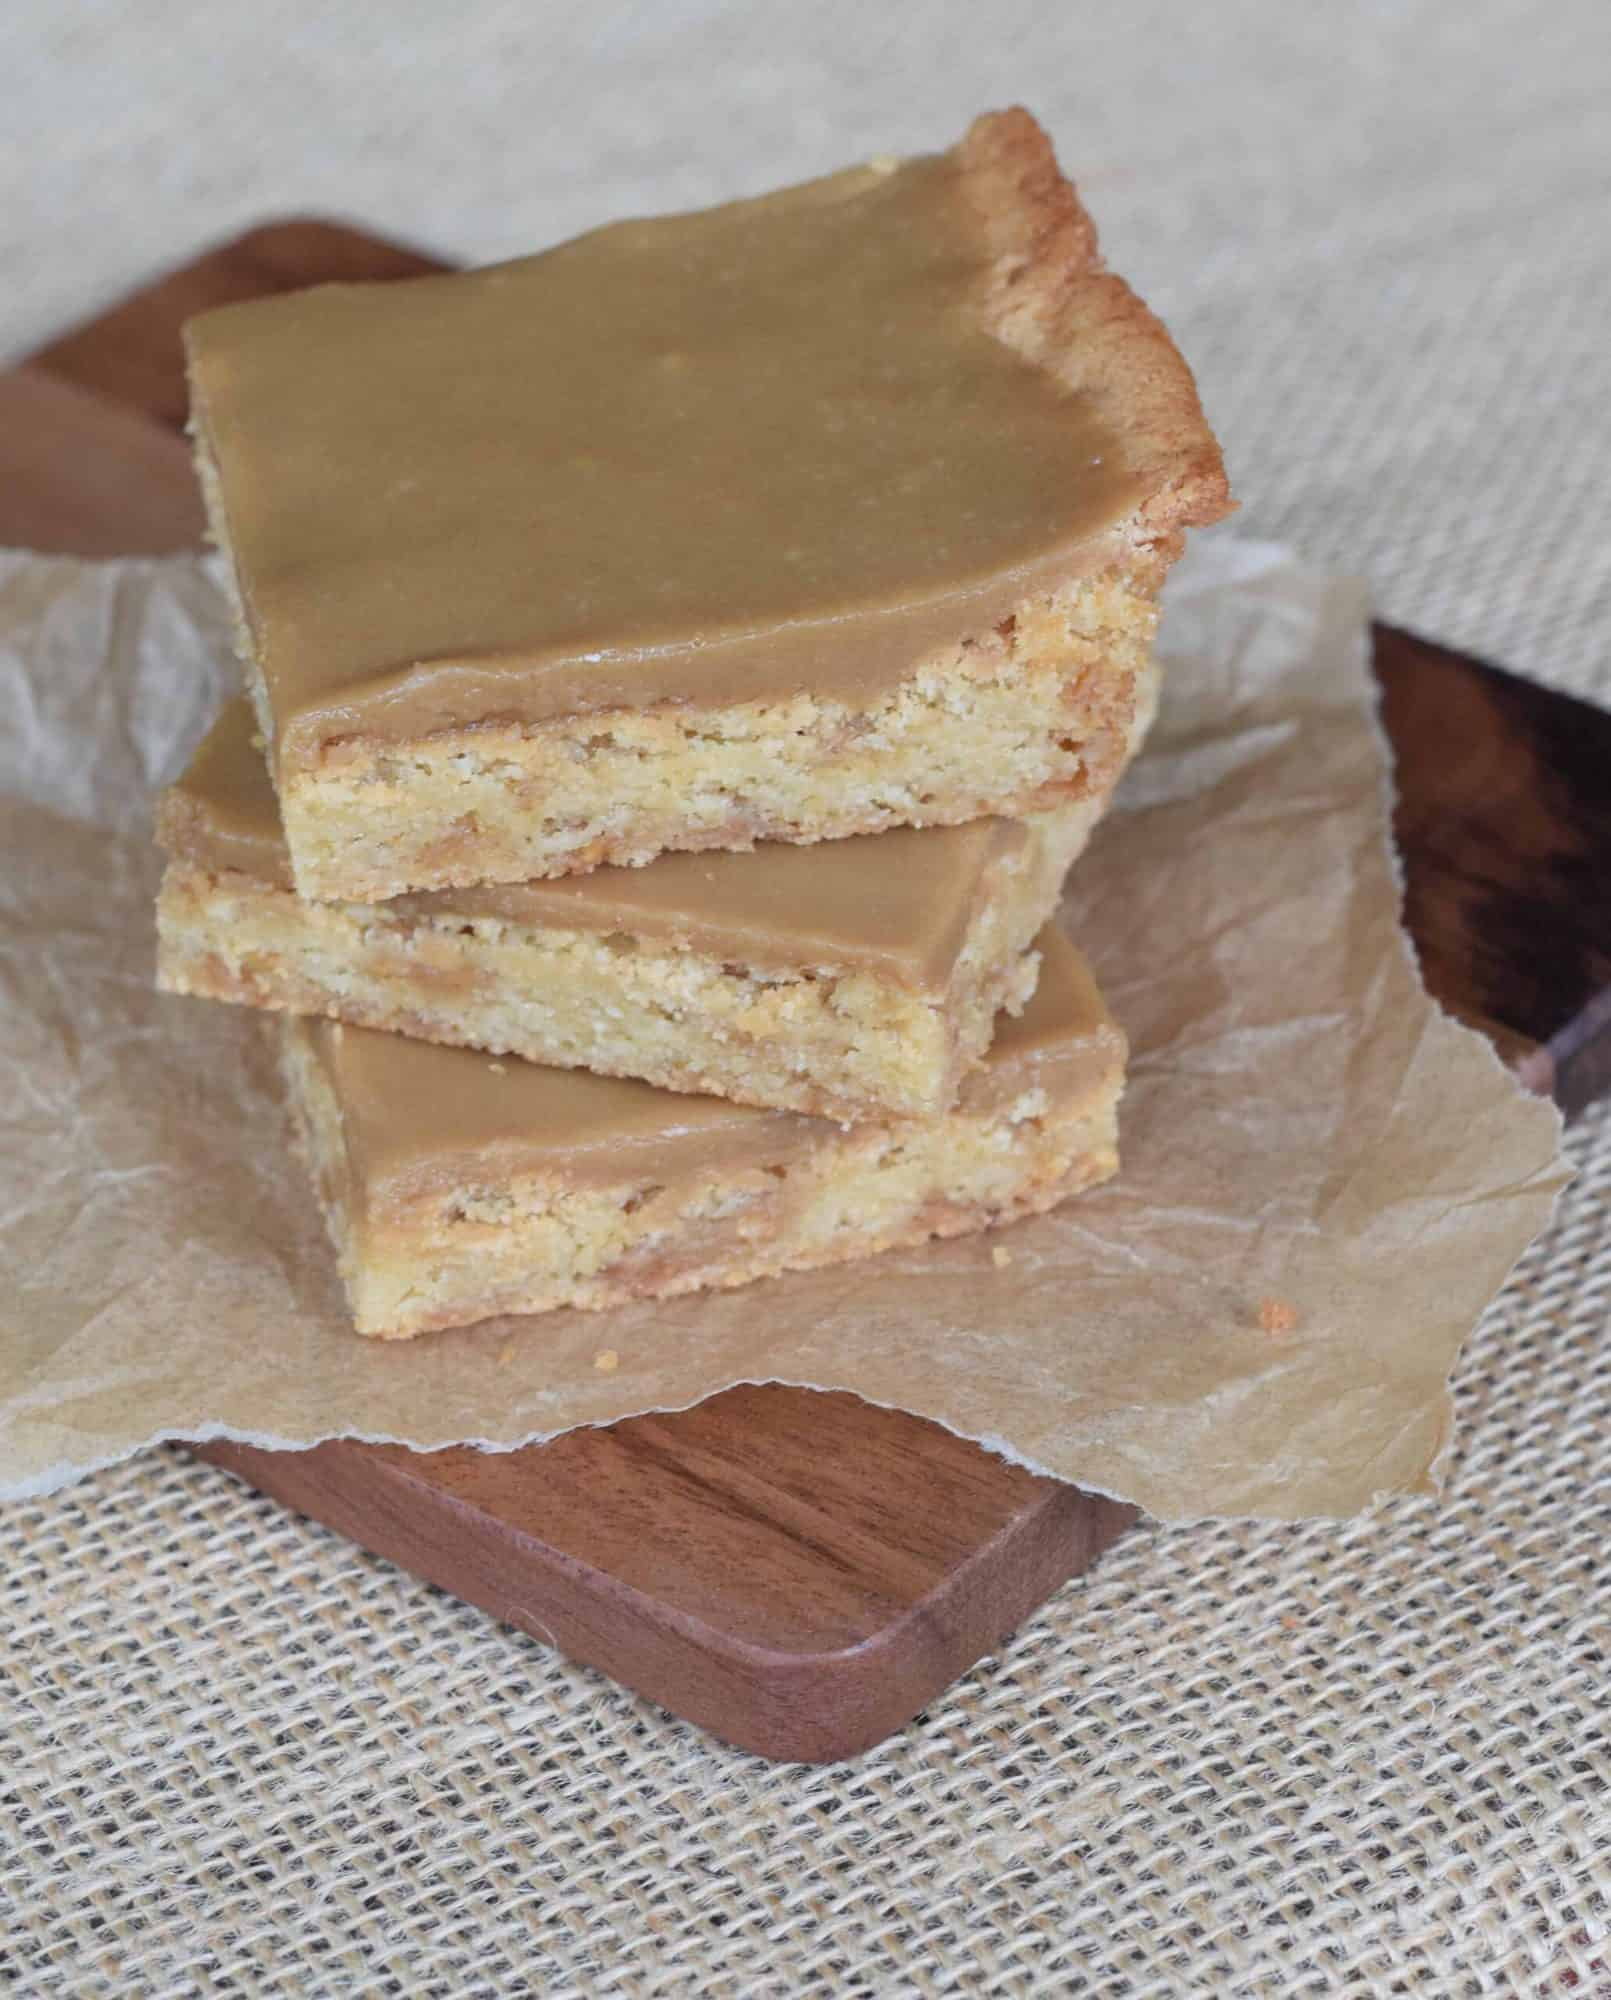 A stack of 3 Toffee Blonde Brownies with Cheaters Caramel icing placed on a dark brown cutting board.